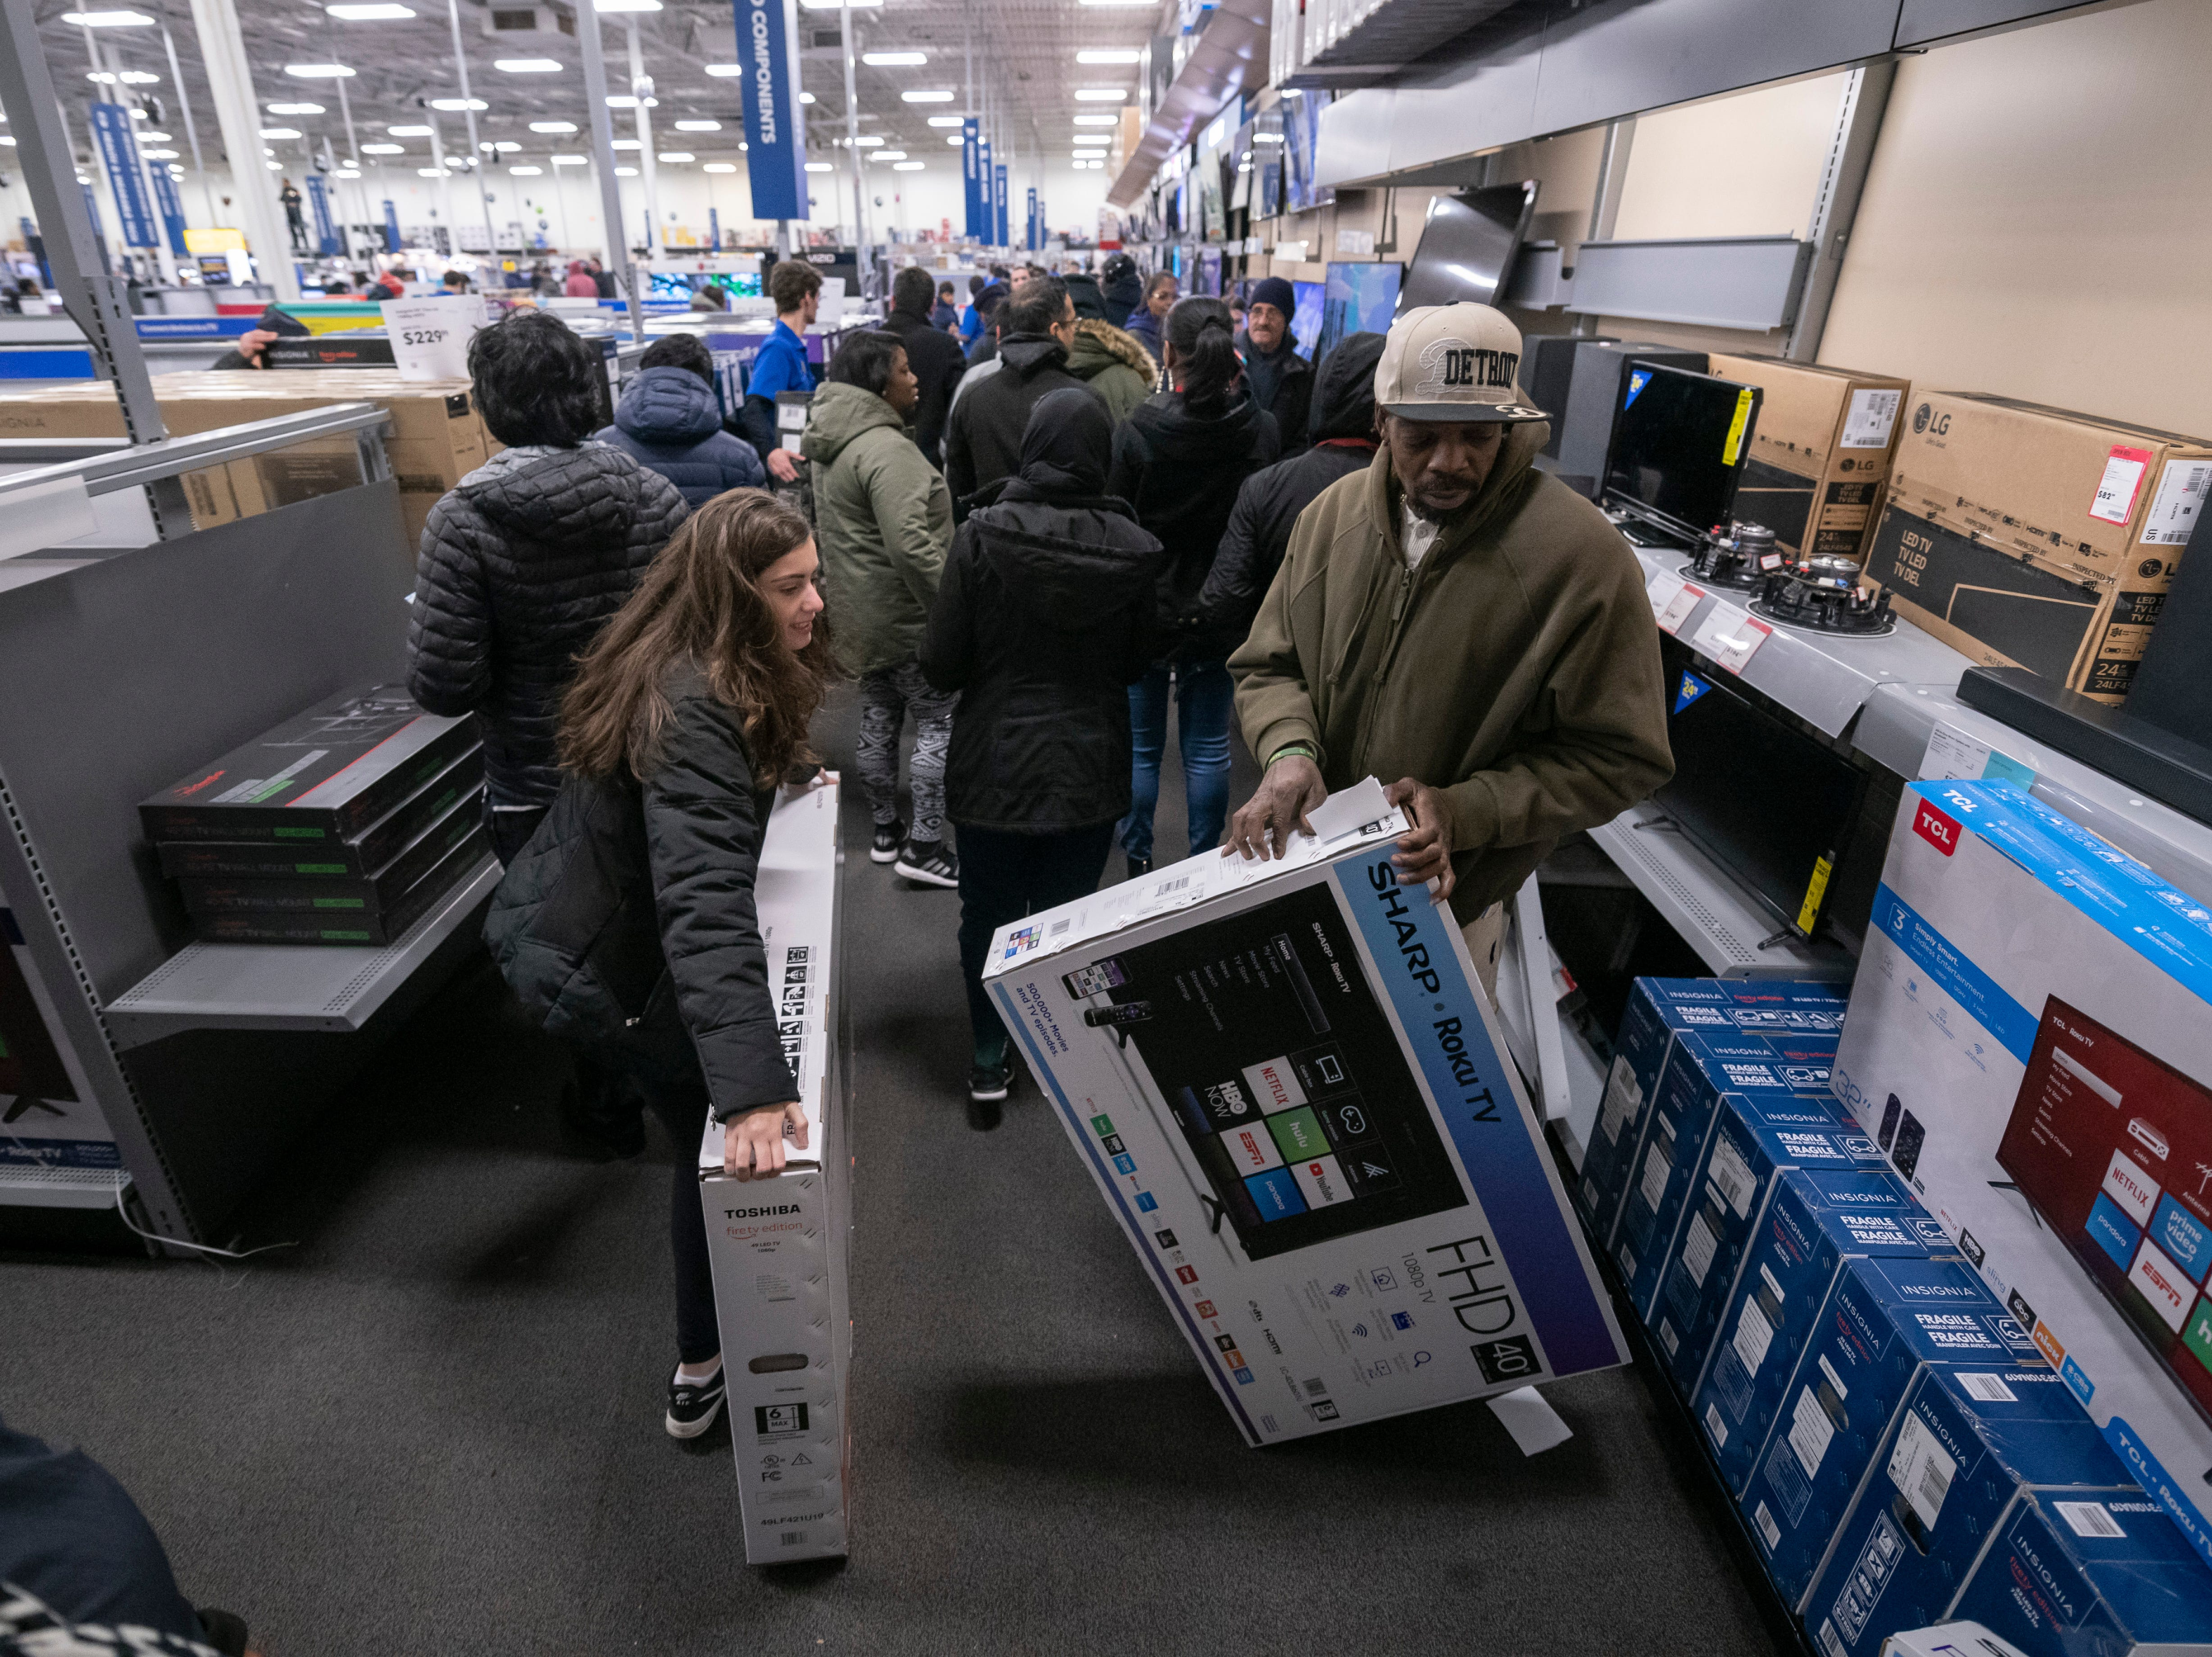 Shoppers grab televisions on sale at Best Buy in Dearborn.